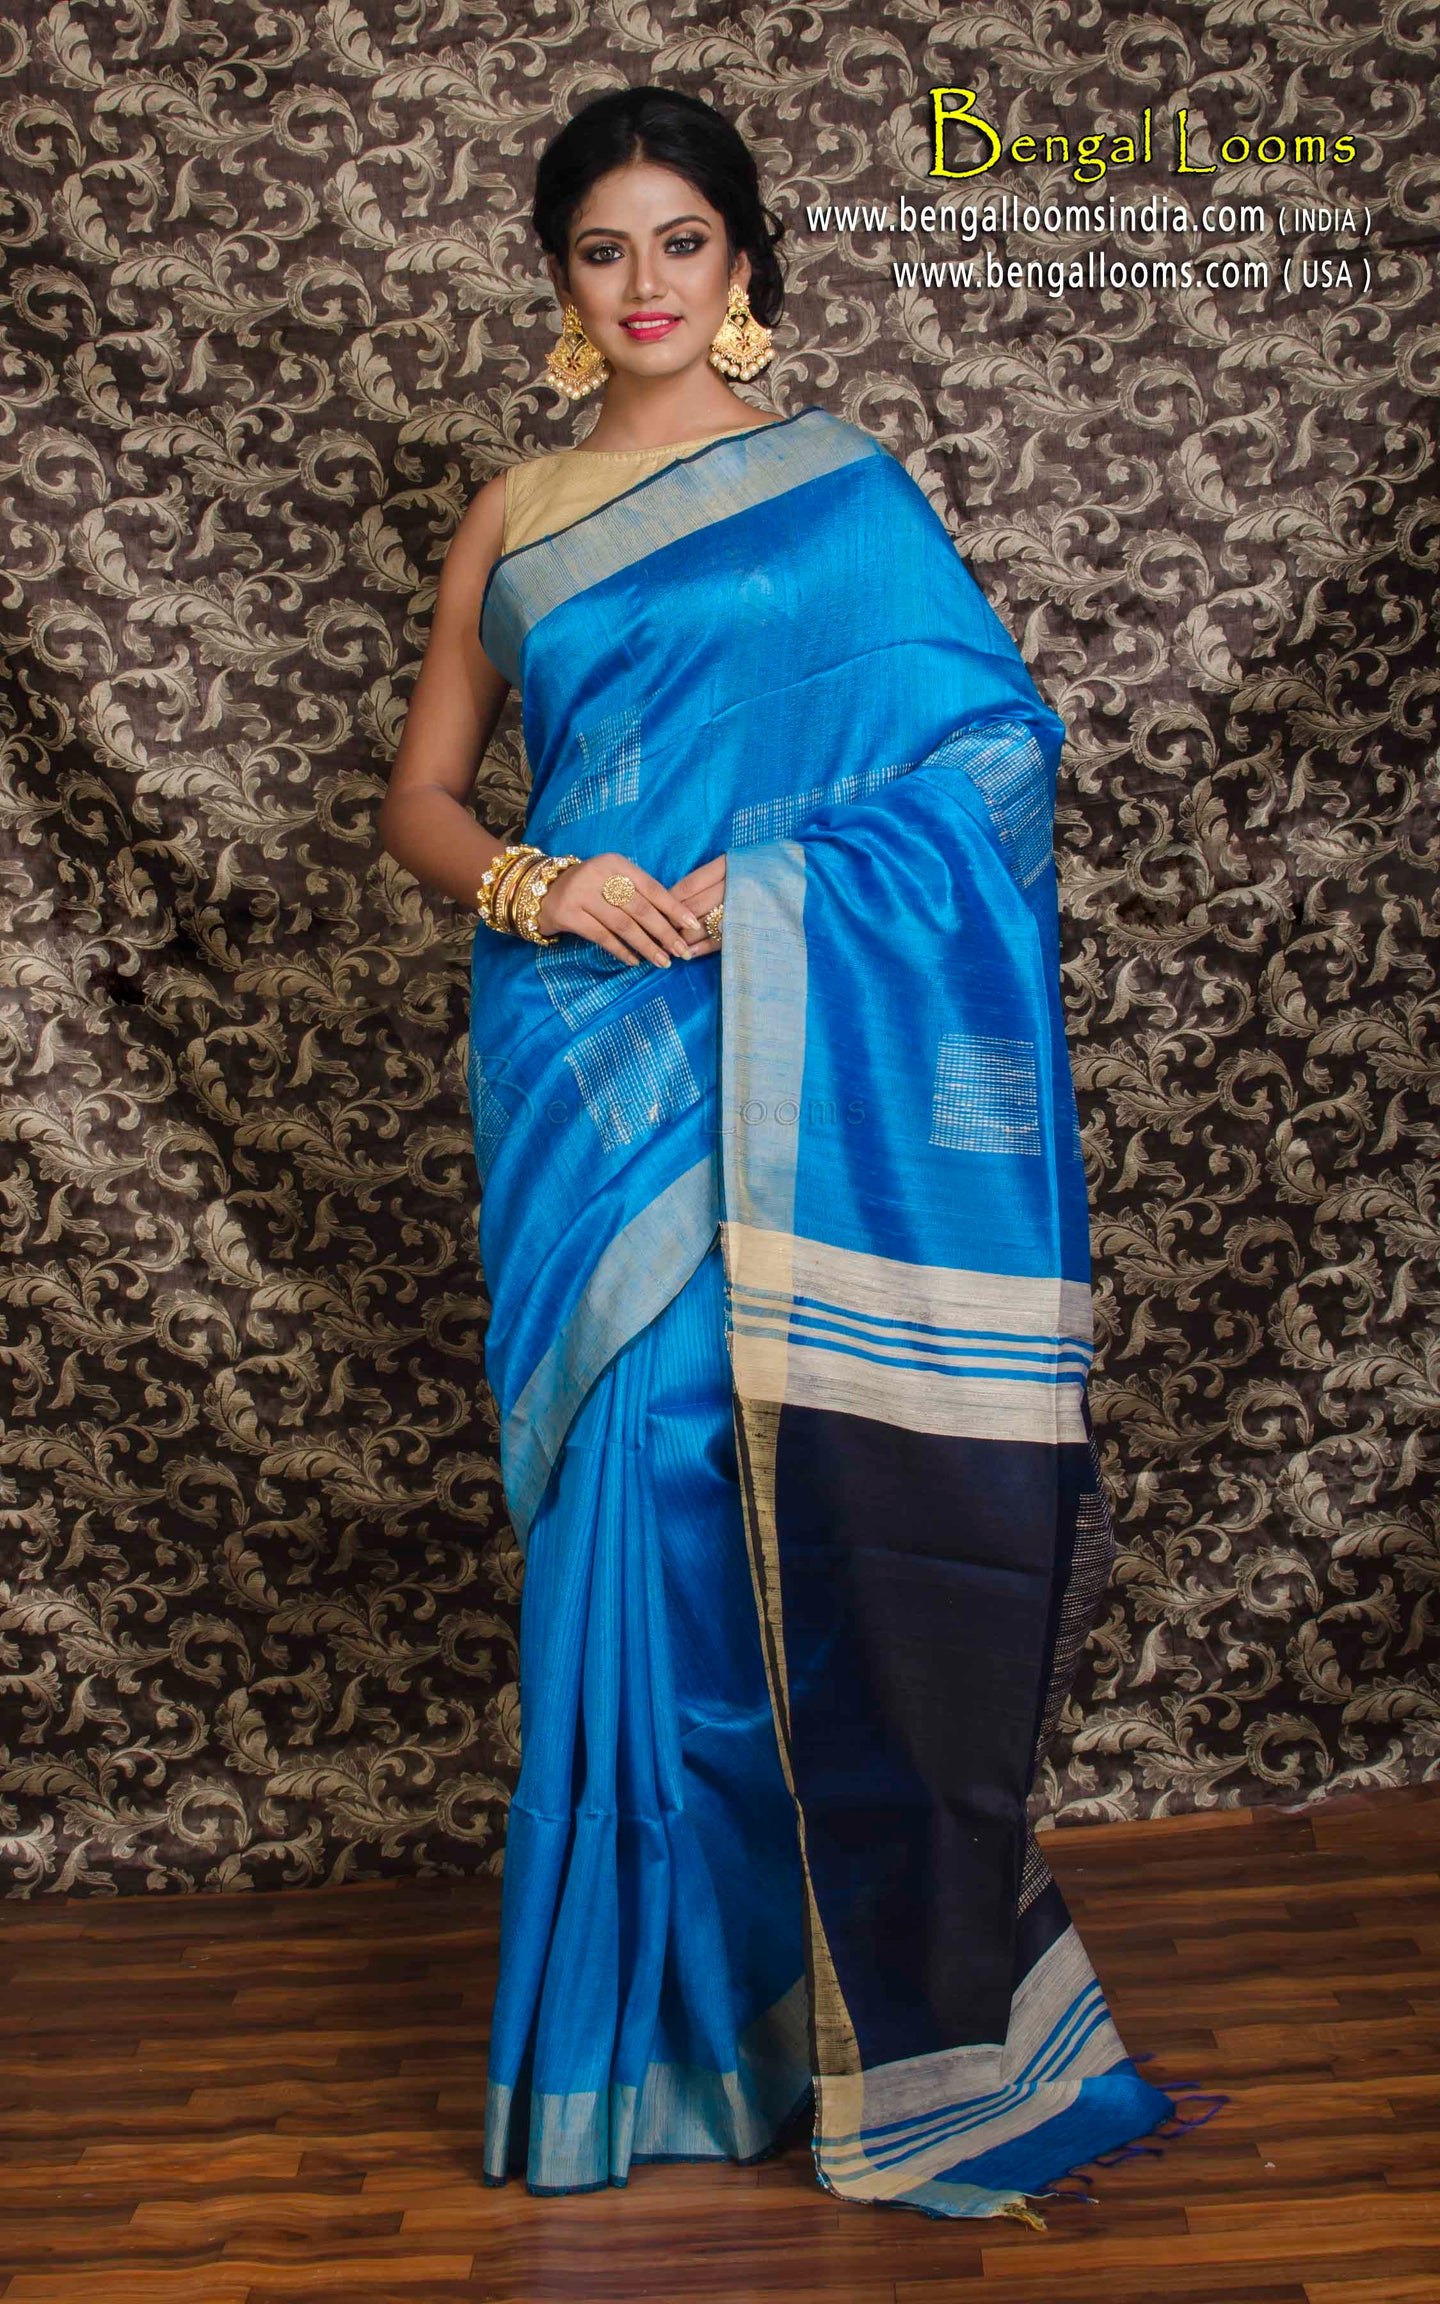 Dupion Tussar Silk Saree in Azure Blue and Navy Blue - Bengal Looms India